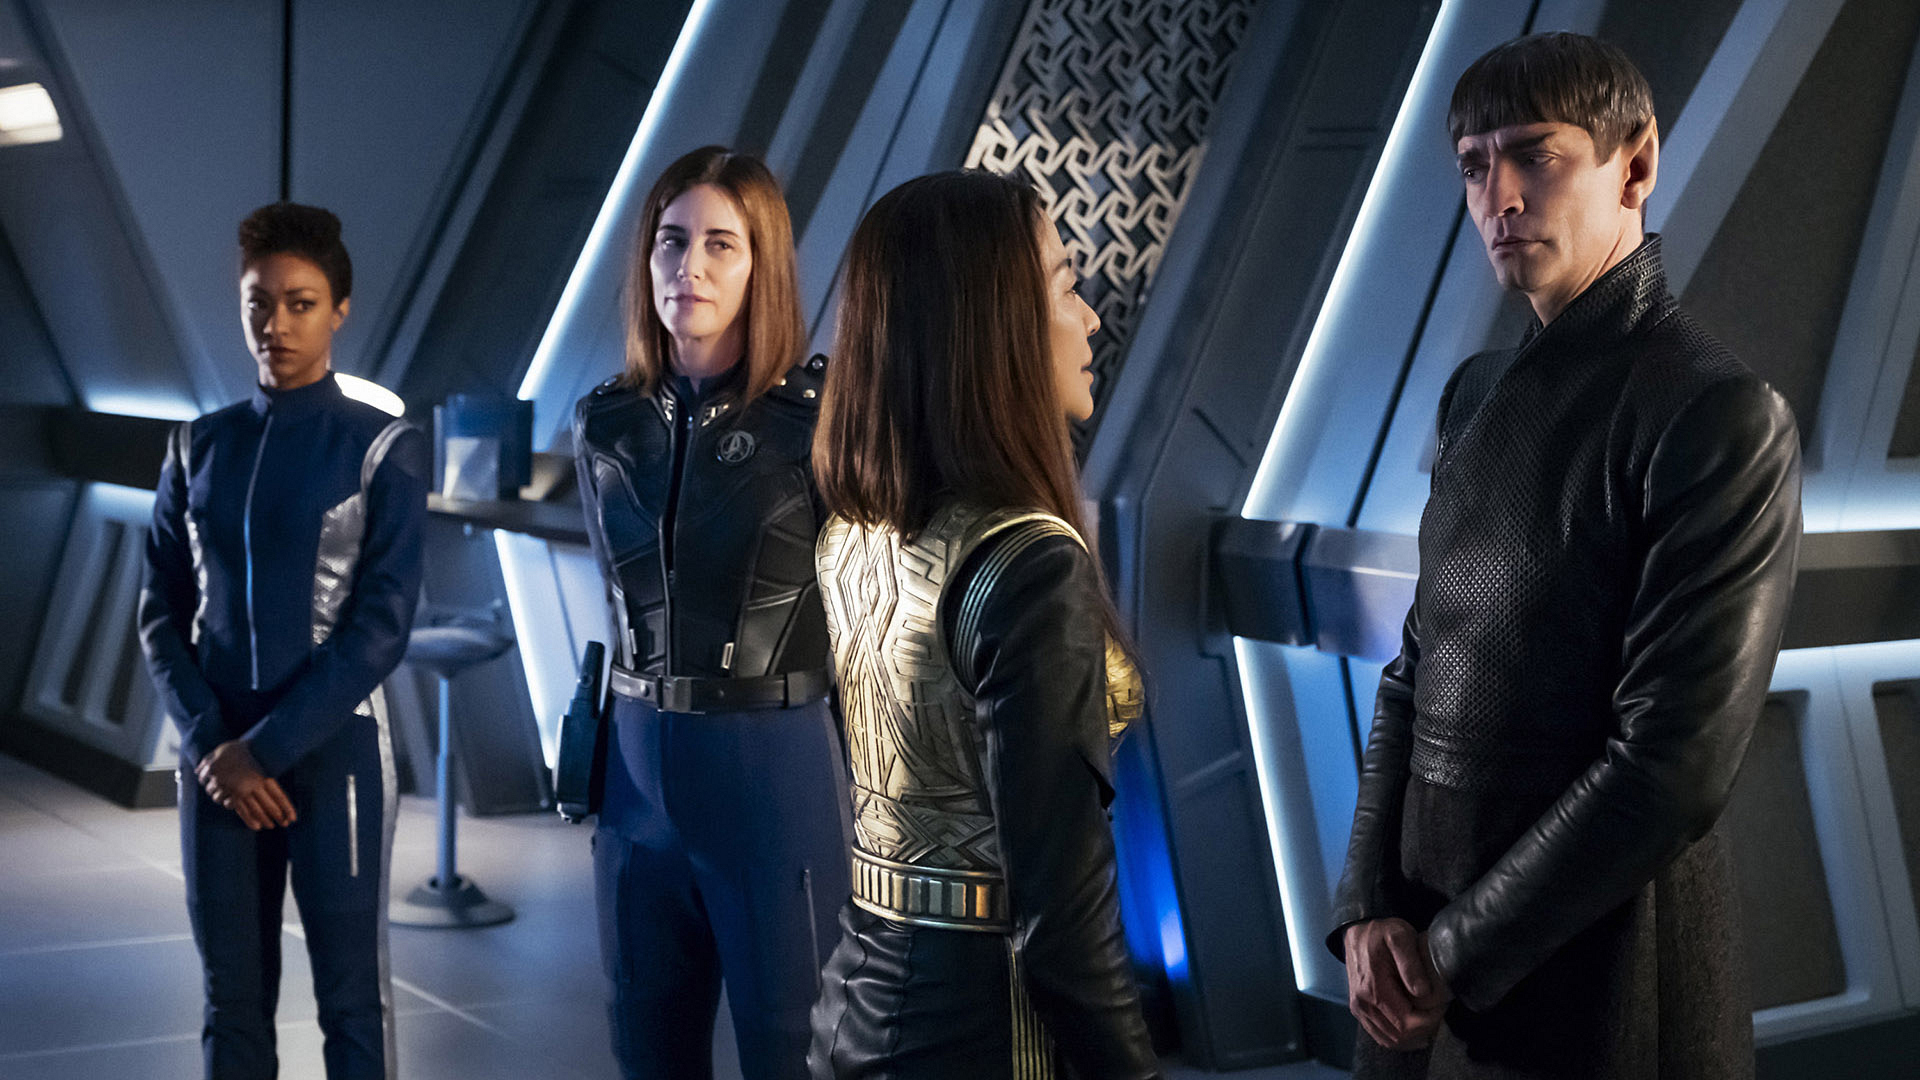 Michael Burnham (Sonequa Martin-Green), Admiral Cornwell (Jayne Brook), Mirror Philippa Georgiou (Michelle Yeoh), and Ambassador Sarek (James Frain)